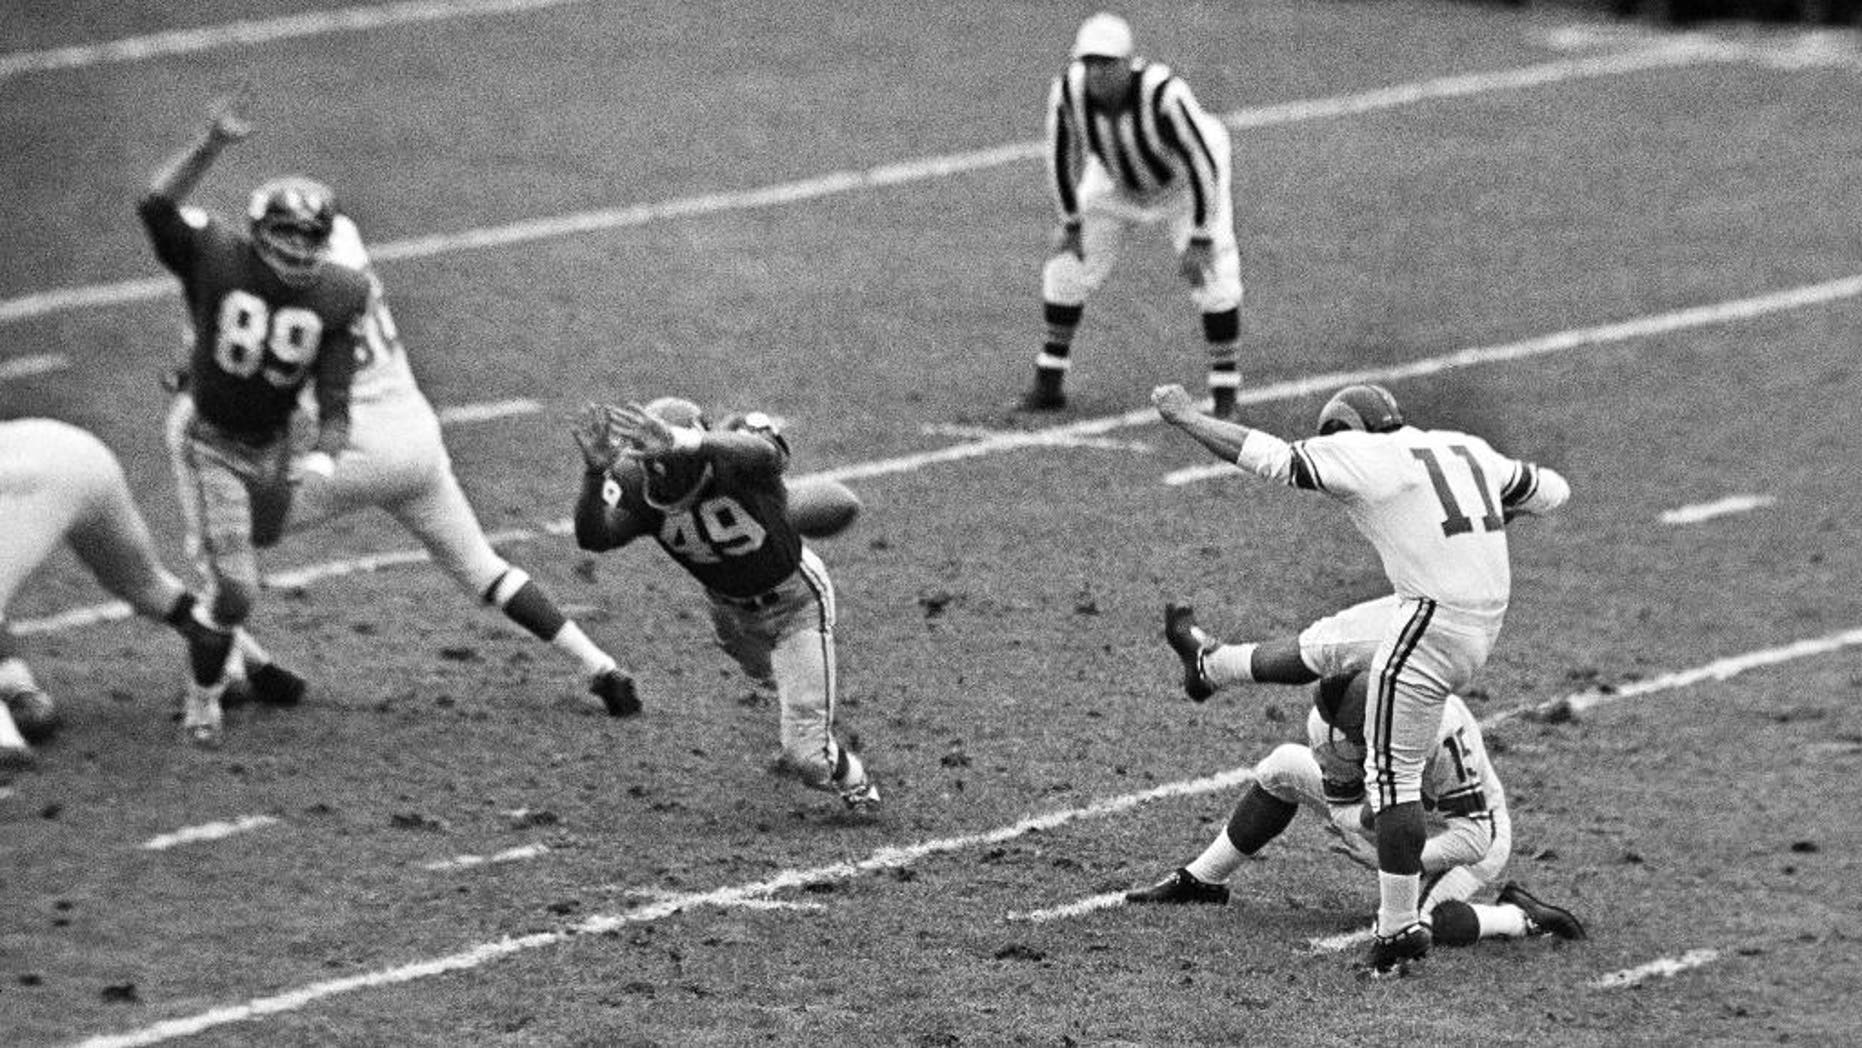 FILE -  In this Oct. 22, 1961, file photo, New York Giants halfback Erich Barnes (49) blocks field goal-attempt by Los Angeles Rams' Danny Villanueva (11) in the first period of NFL game in New York's Yankee Stadium. Villanueva, who was one of the NFL's first Latino kickers and a pioneer of Spanish-language television, has died. He was 77. Family members and officials at New Mexico State University, where Villanueva was a member of the athletic hall of fame, confirmed that he died Thursday, June 18, 2015, after suffering a stroke earlier this week. (AP Photo, File)